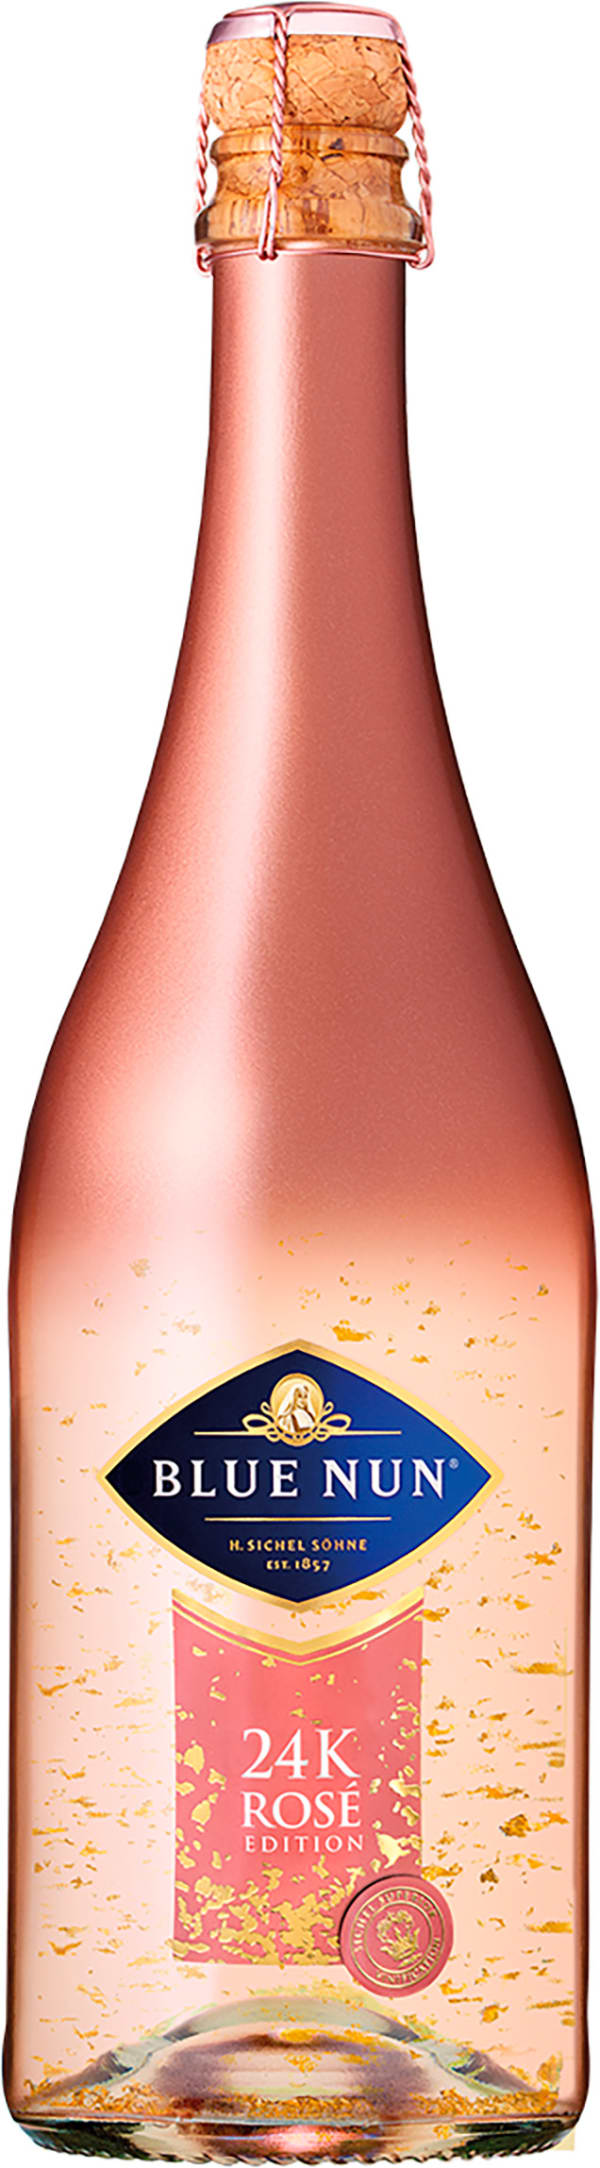 Blue Nun 24K Rosé Edition Dry